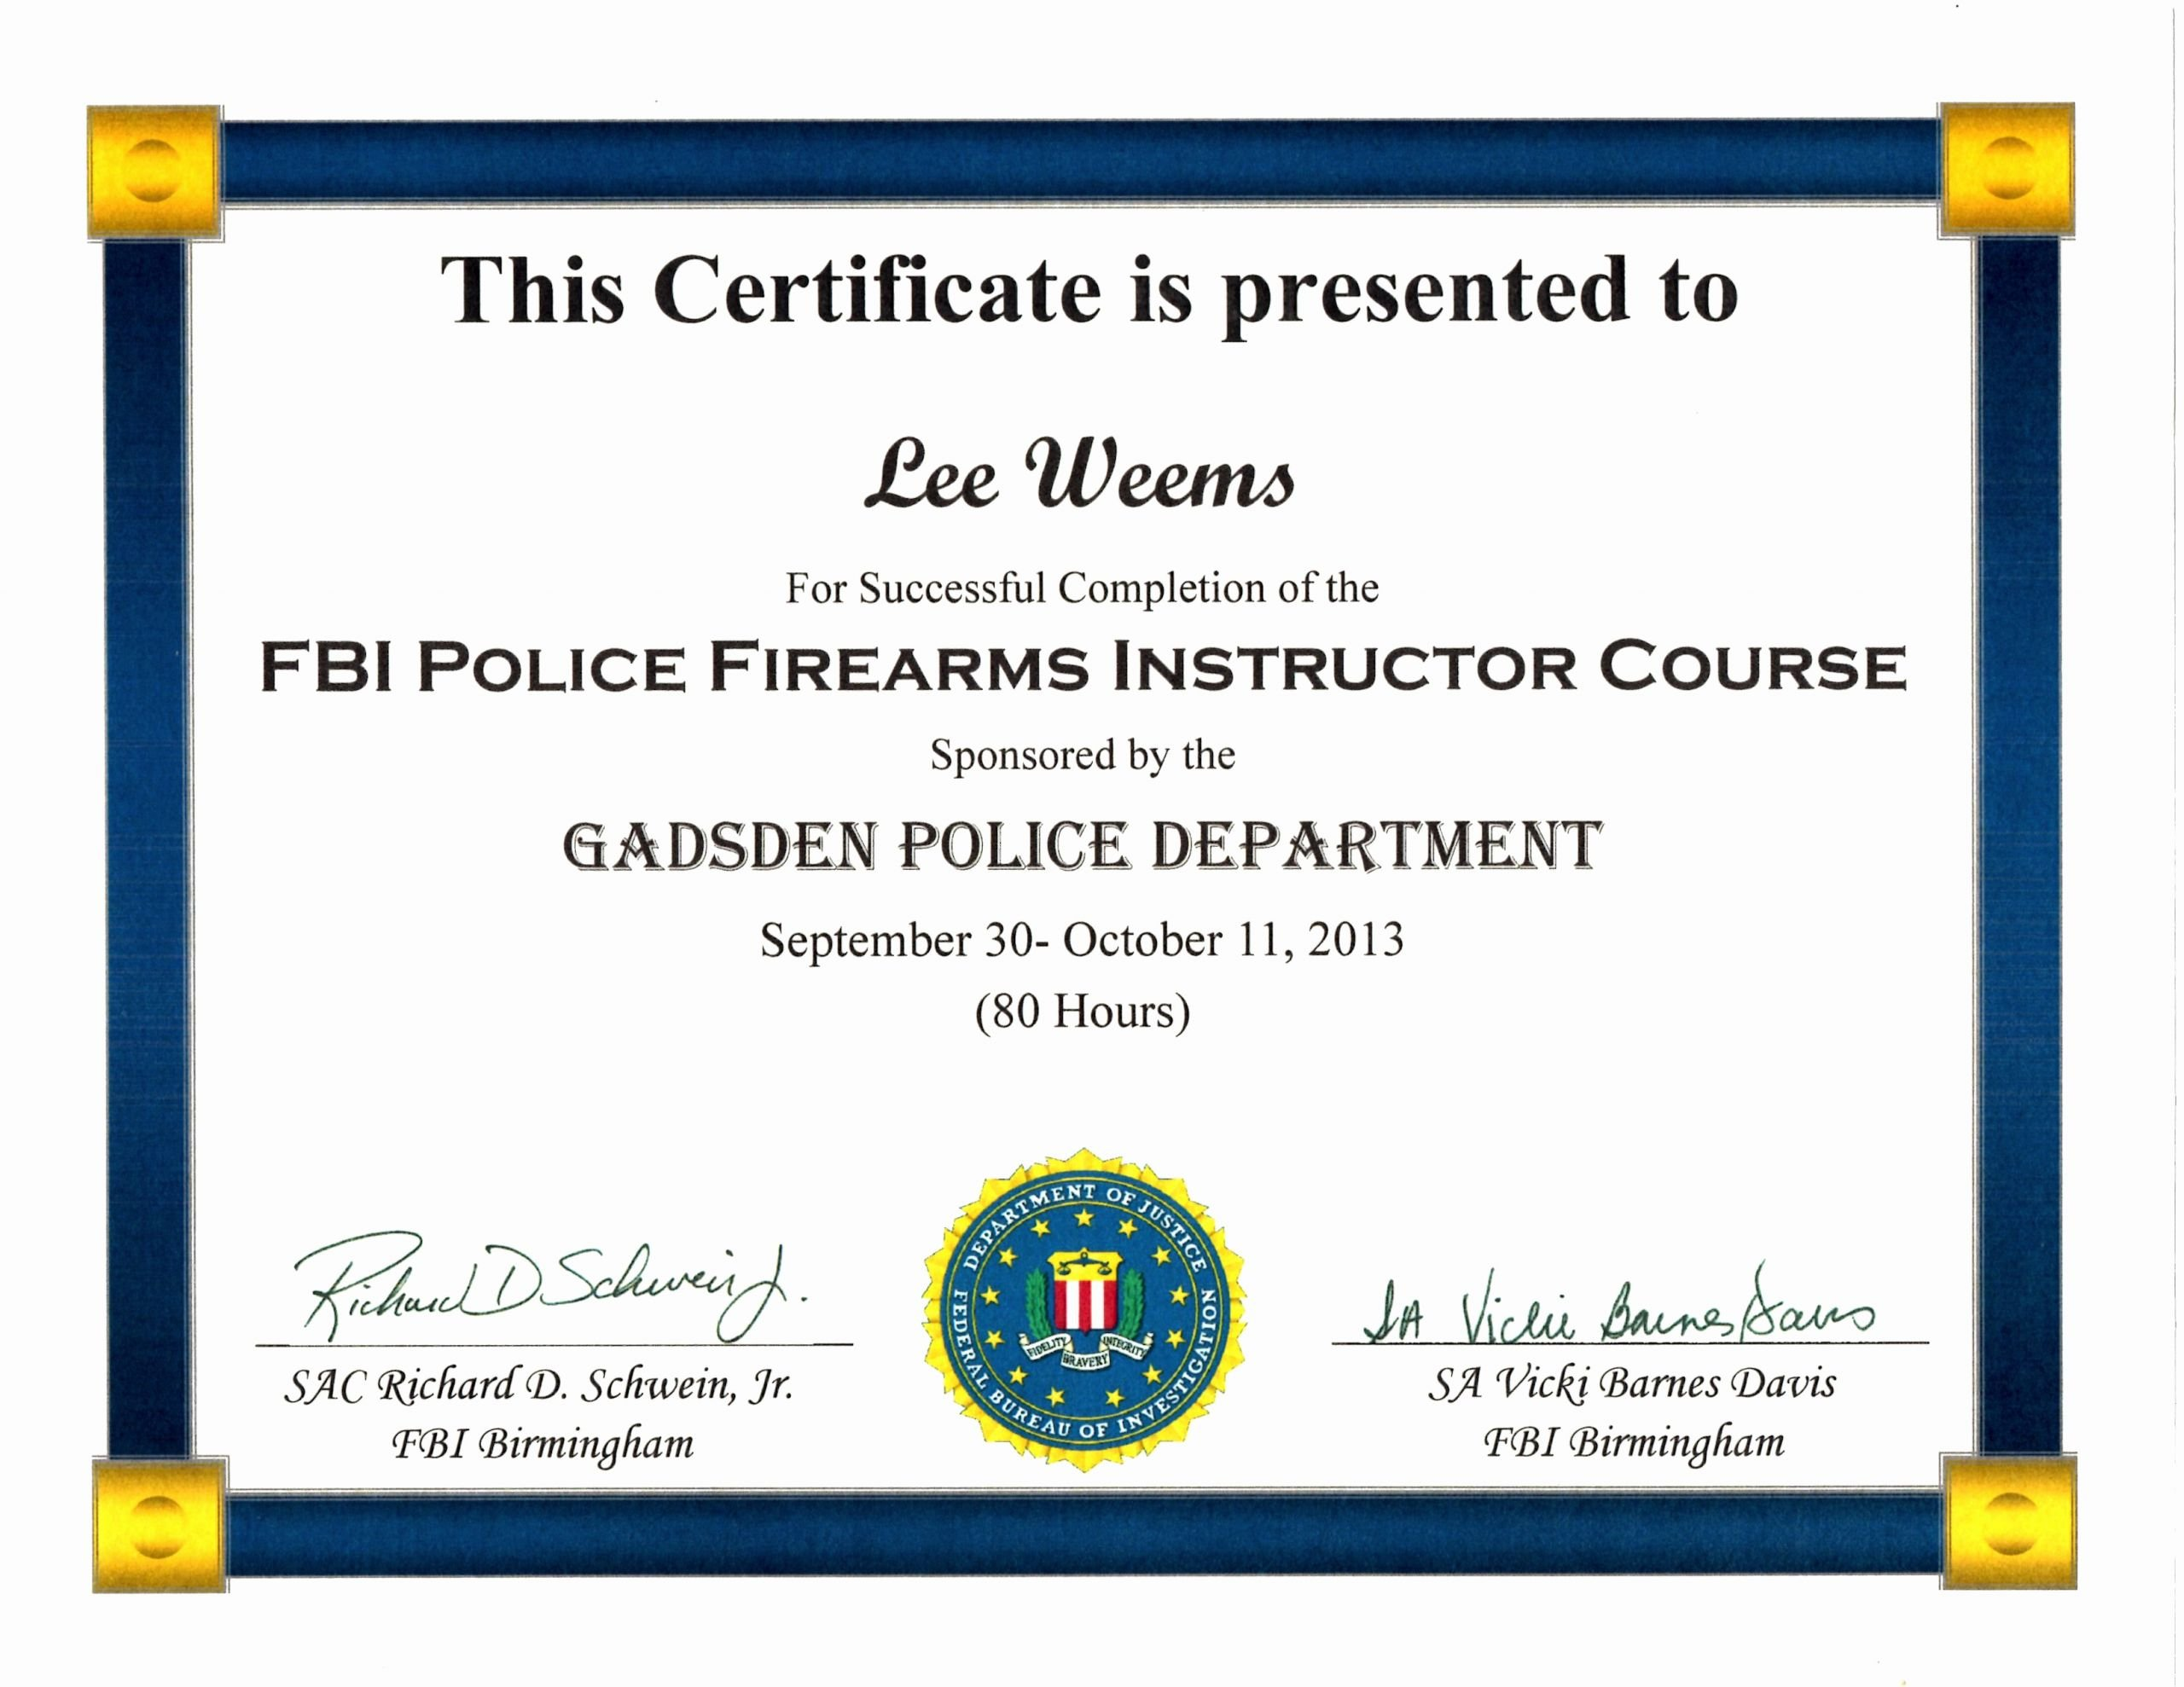 Army Certificate Of Training Template Best Of Fbi Police Firearms Instructor Course